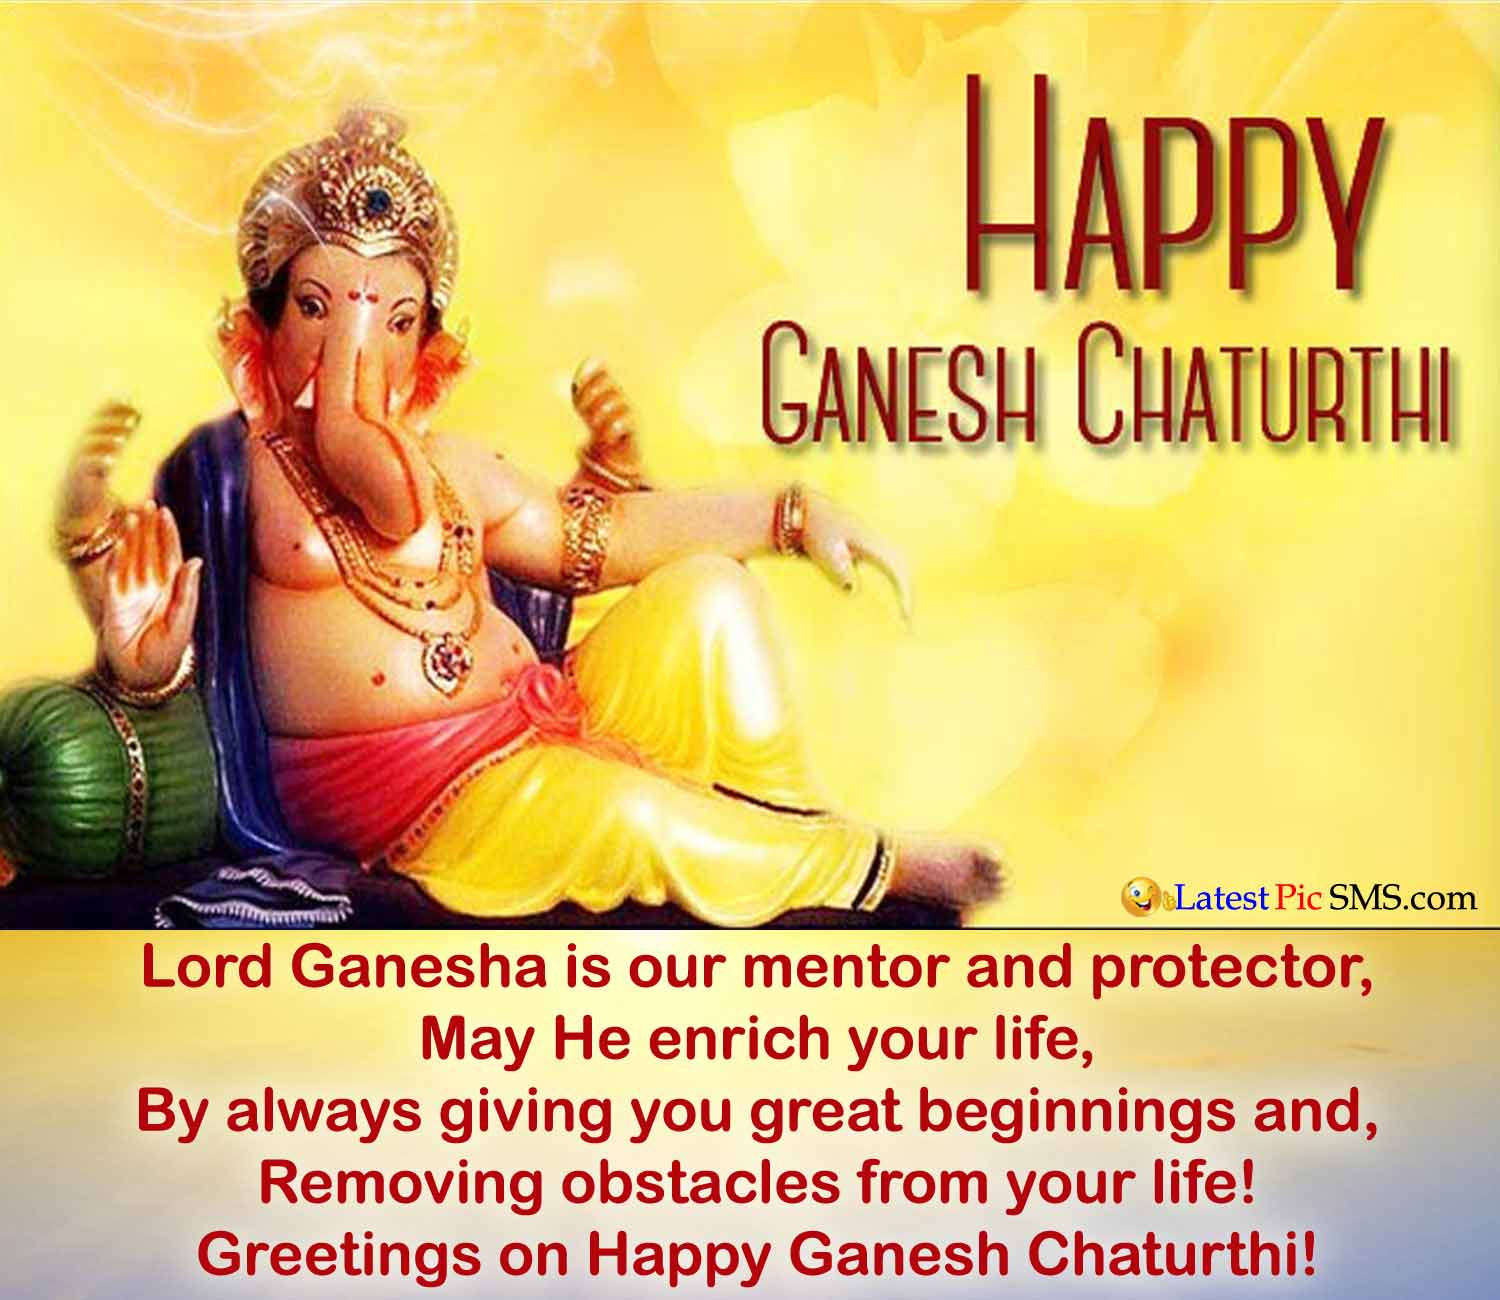 ganesh chaturthi greetings - photo #23